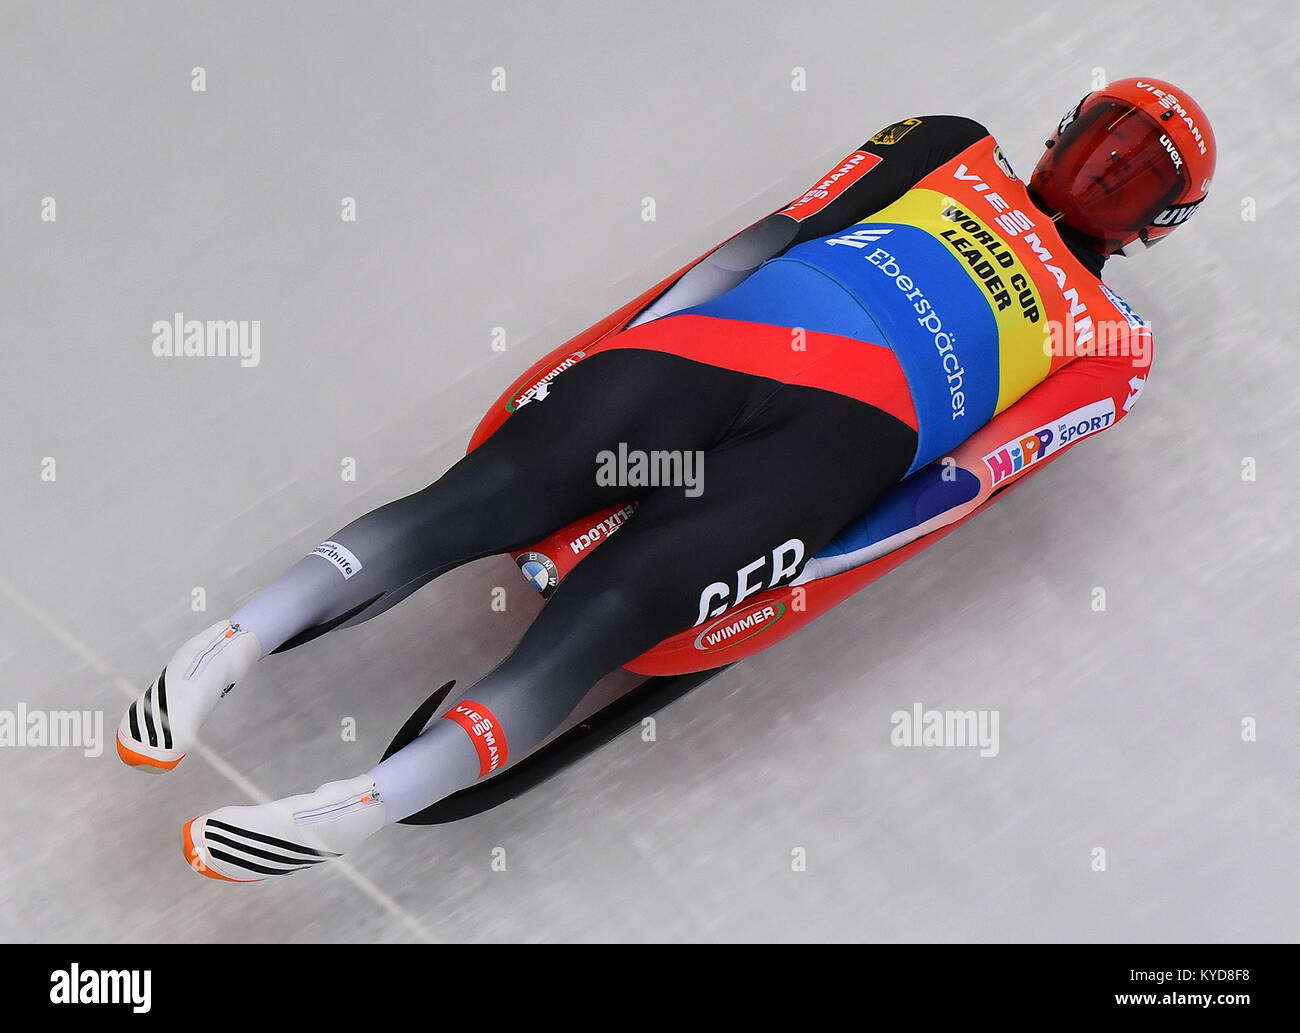 Luges High Resolution Stock Photography and Images - Alamy